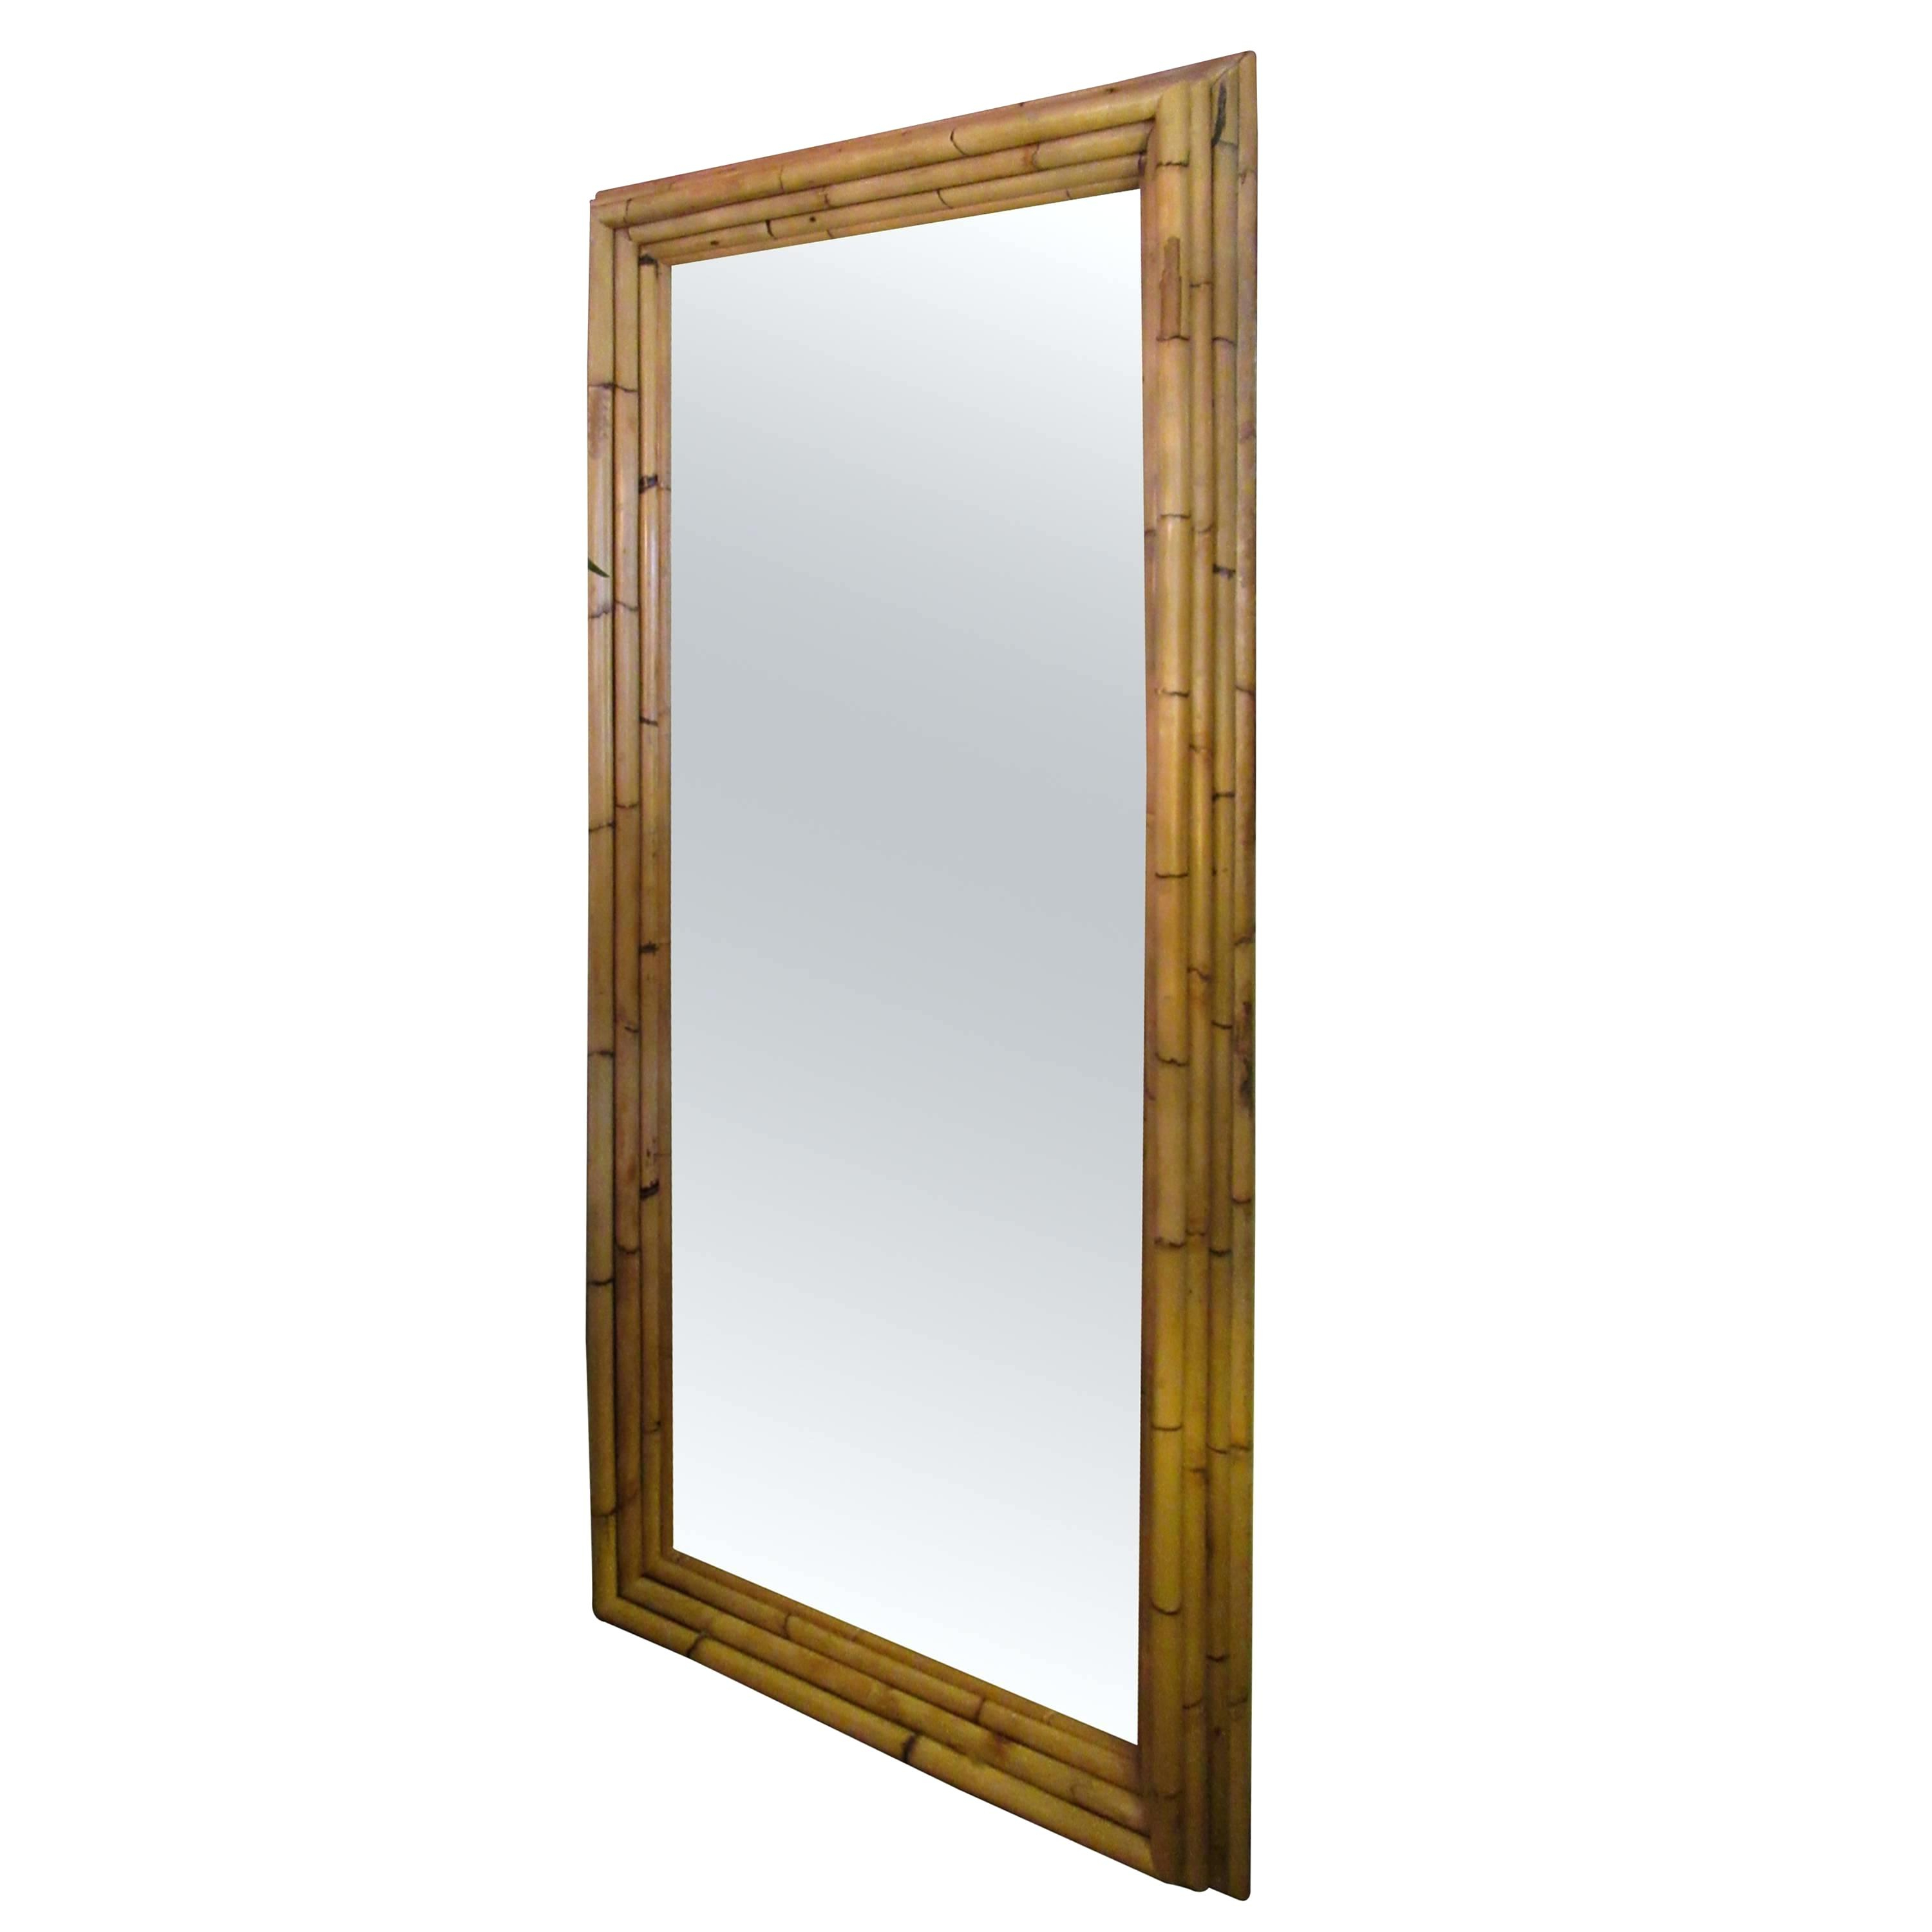 Bamboo Wall Mirrors Regarding Well Known Large Bamboo Wall Mirrors Dimensional Frame Full Length Mirror For (View 15 of 20)